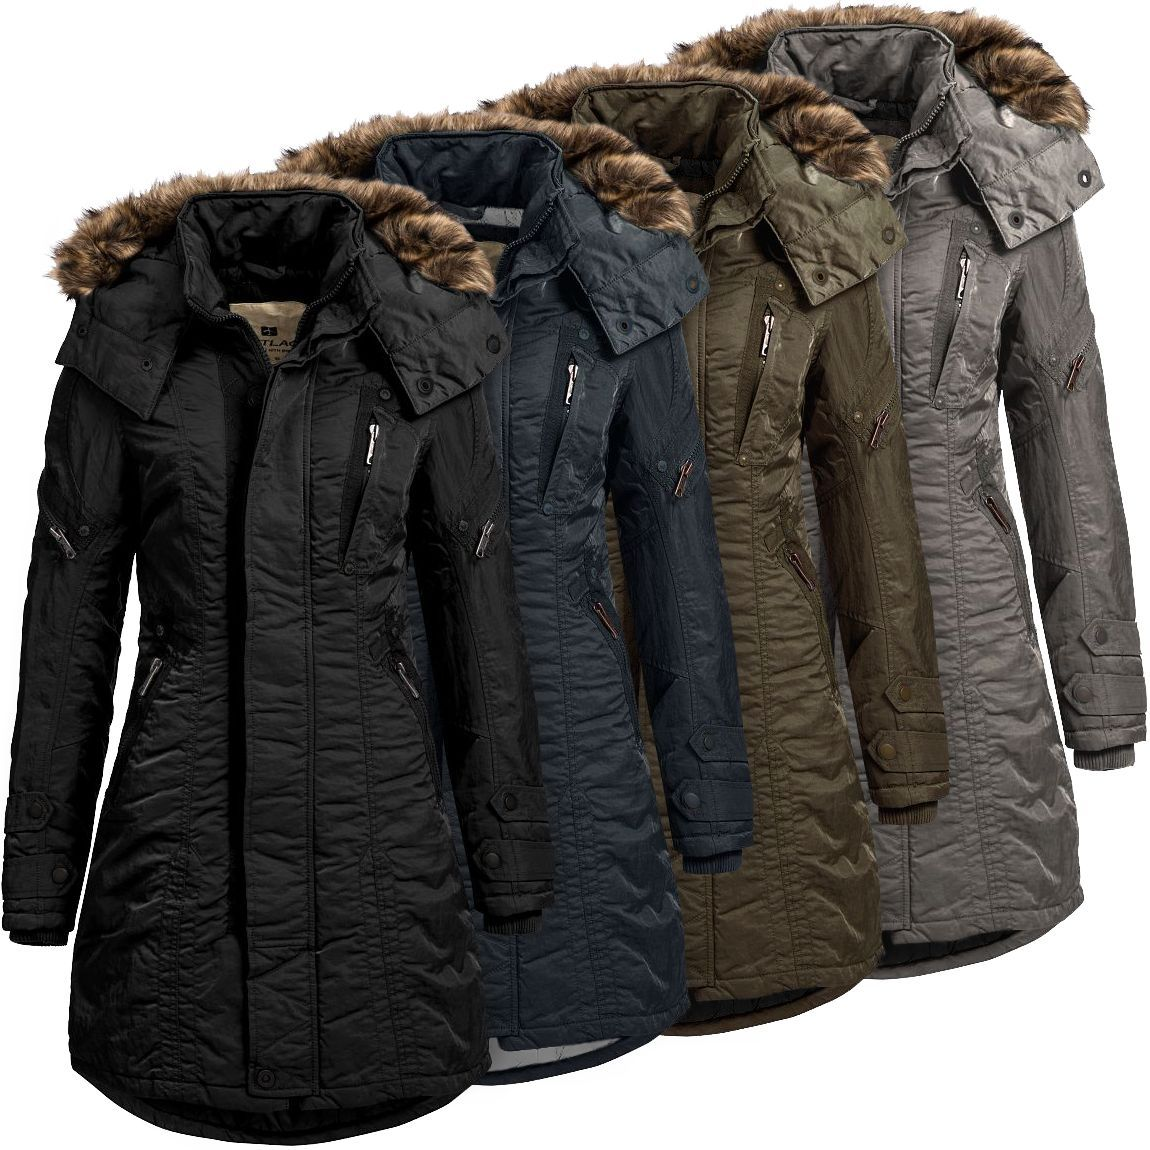 jet lag damenparka sw61a damen winterparka mantel parka. Black Bedroom Furniture Sets. Home Design Ideas